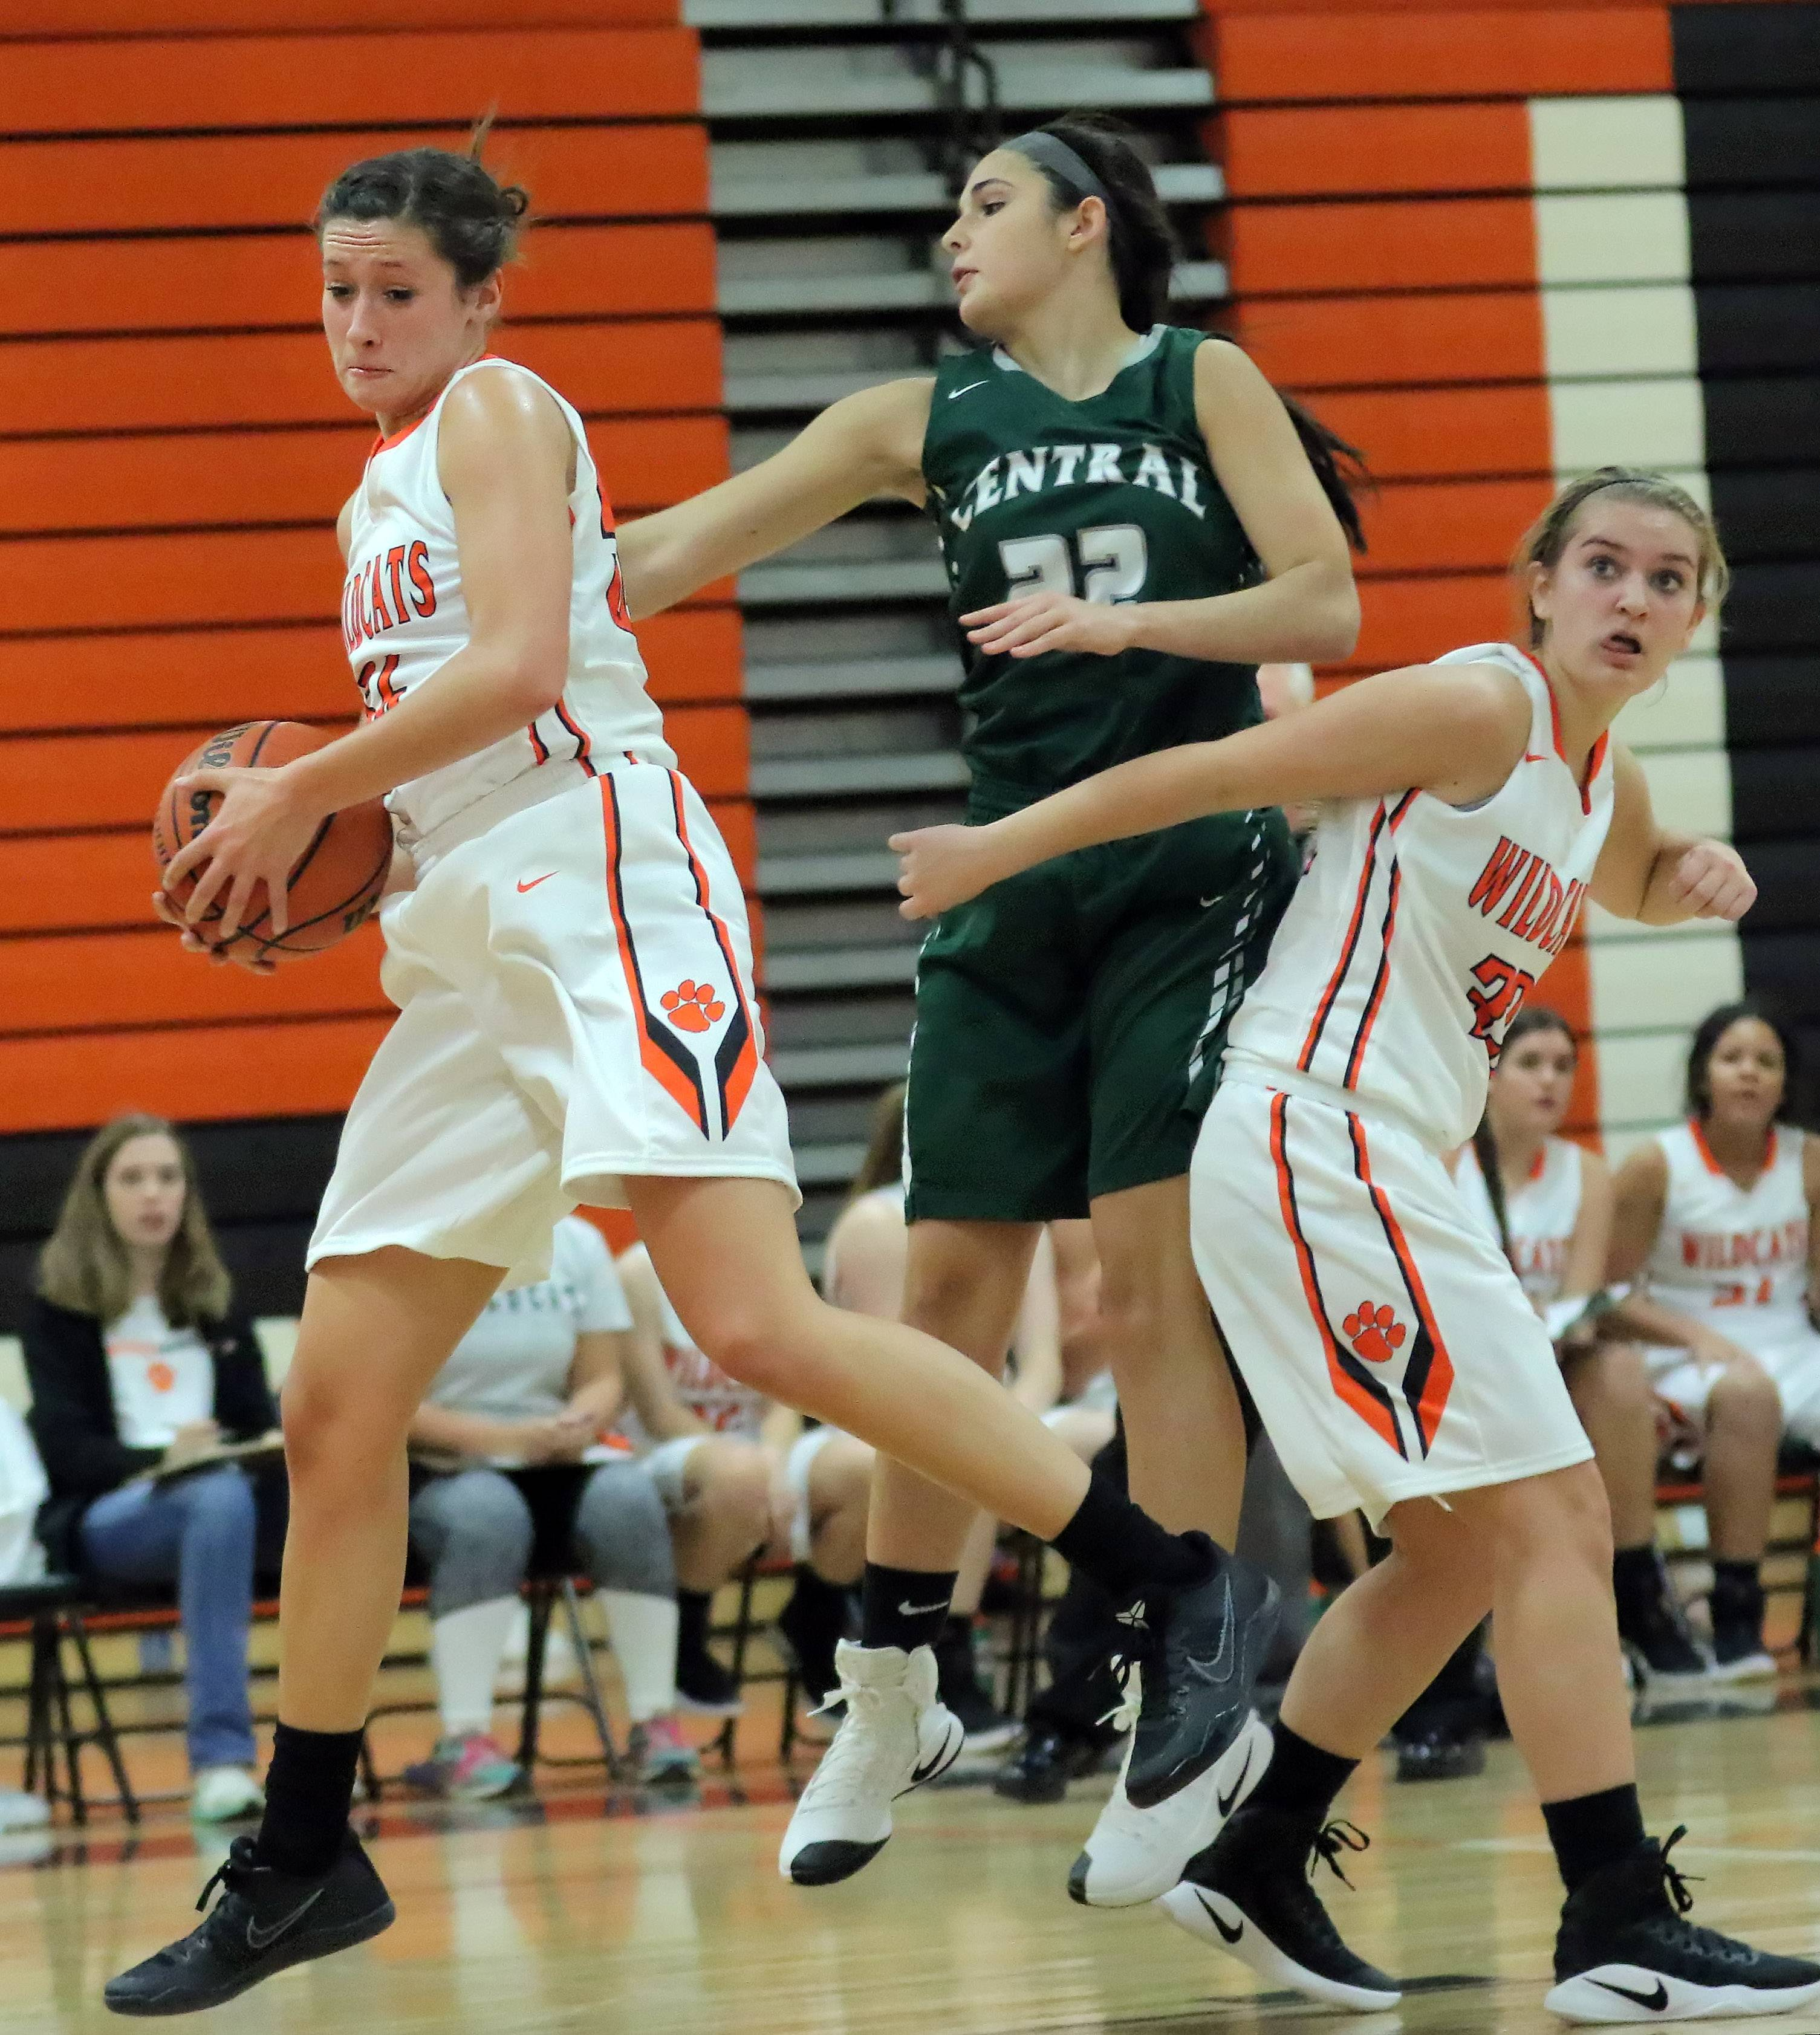 Libertyville's Claire Keefe, left, pulls down a rebound over Grayslake Central's Bitsy Erker on Tuesday night at Libertyville.